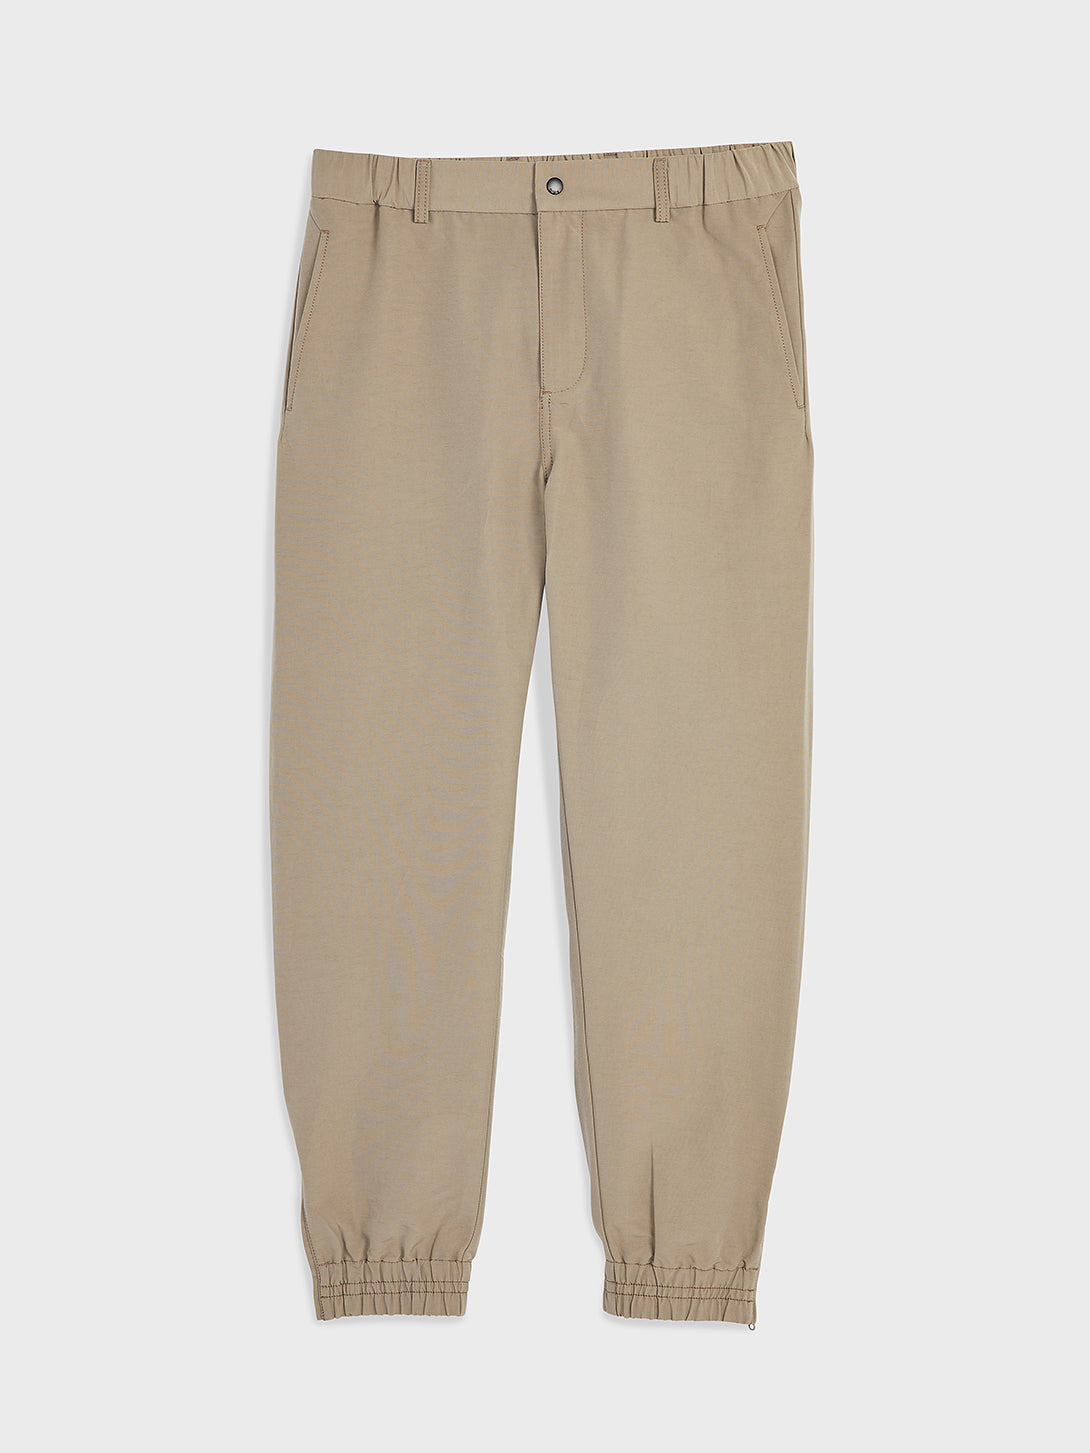 ONS Clothing Men's GARFIELD ACTIVE TROUSERS in KHAKI